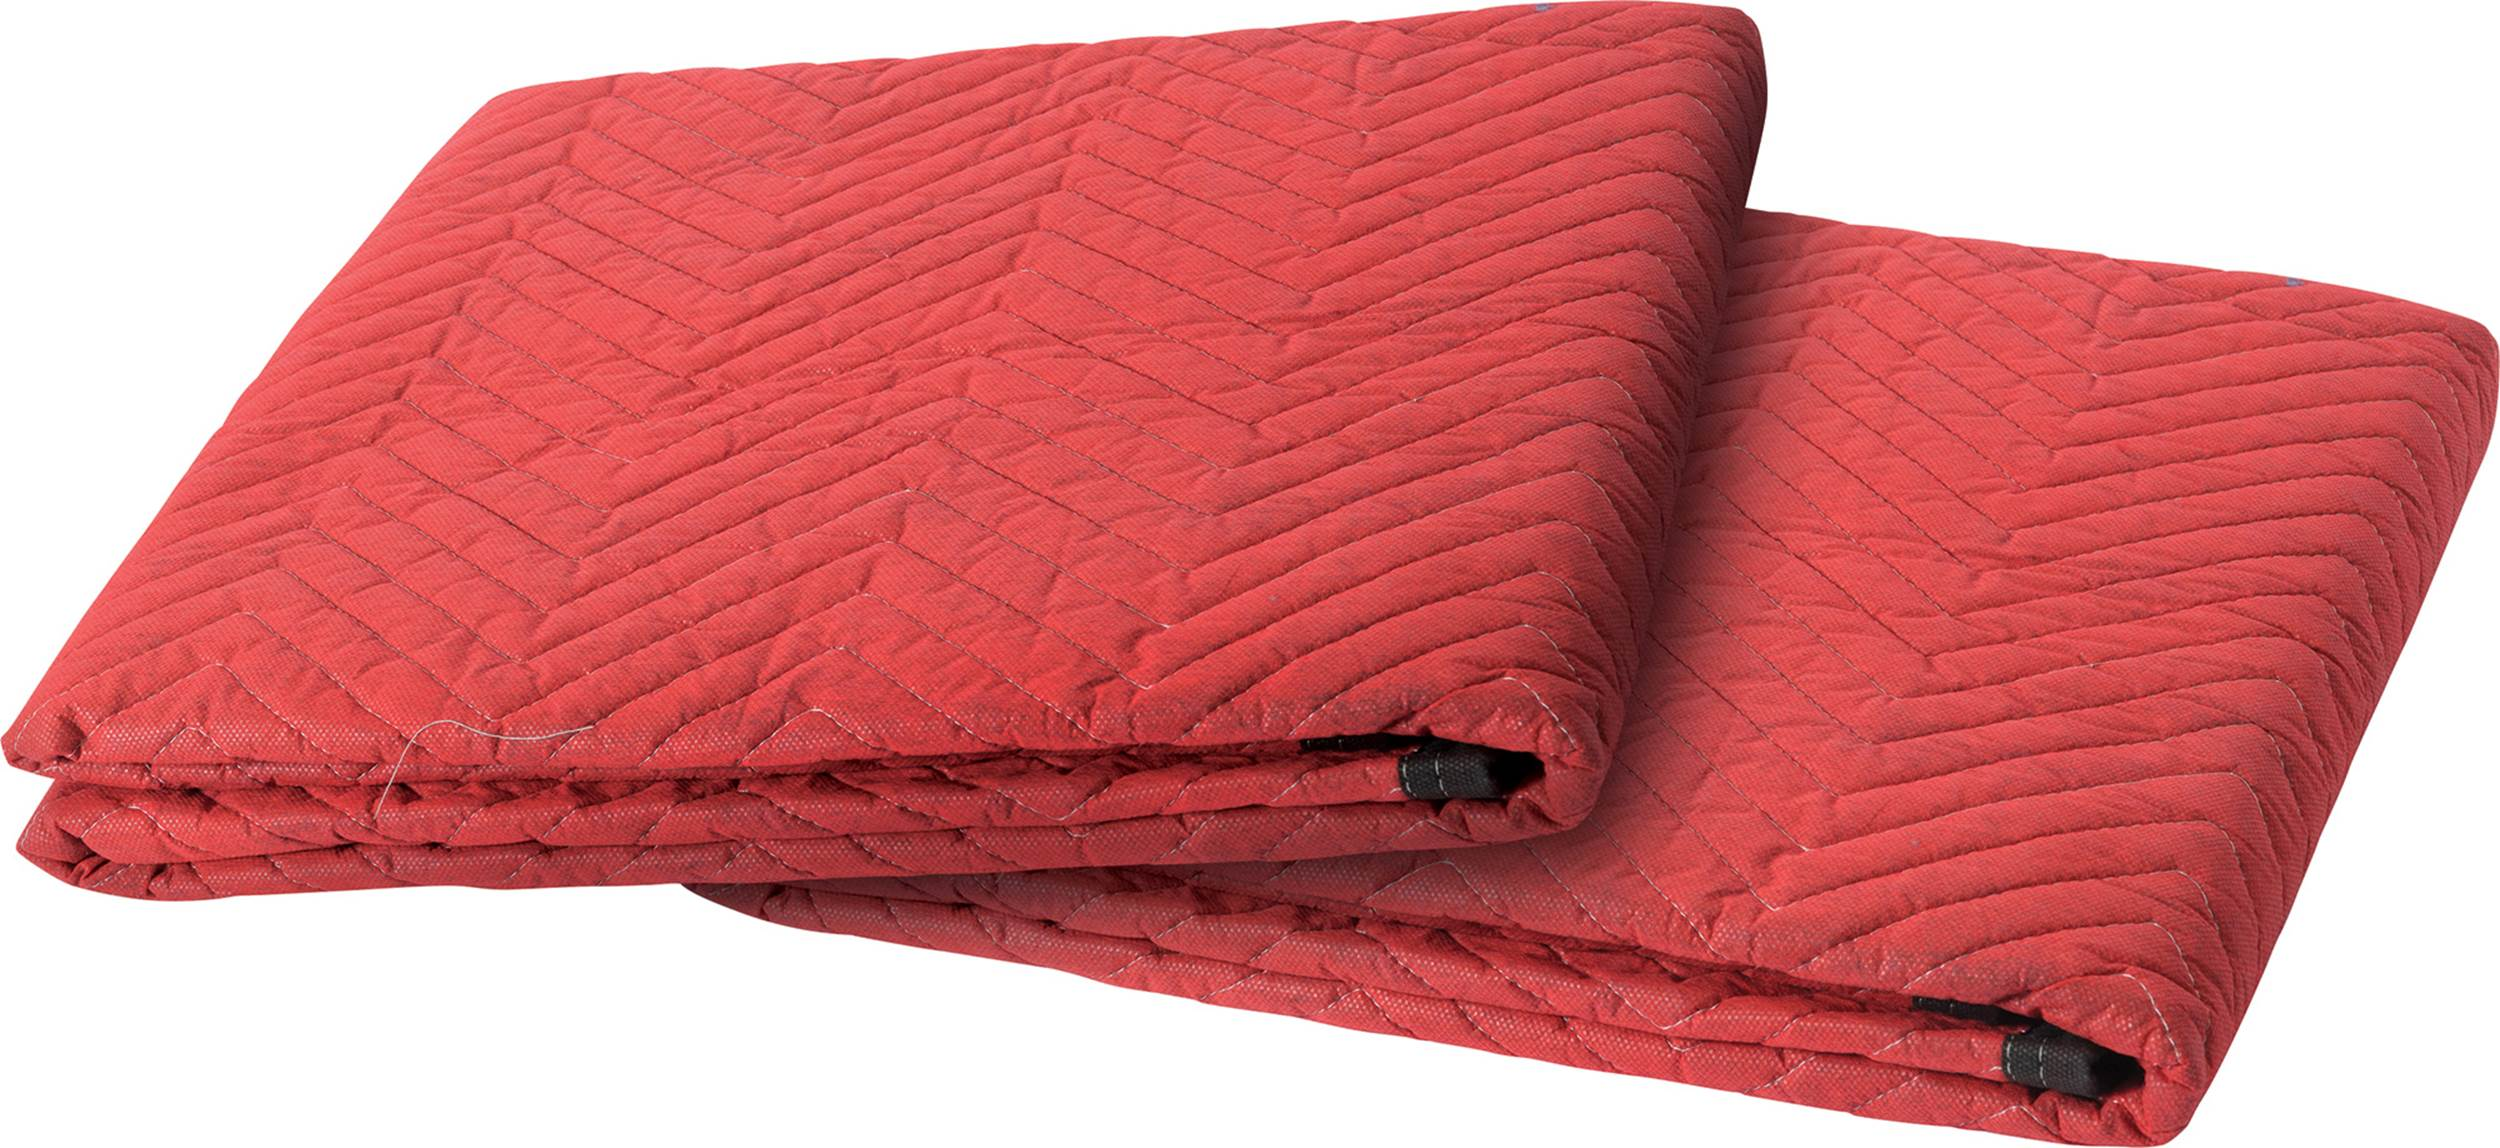 """Shipping Blanket - 45"""" x 72"""" - Pack of 2"""